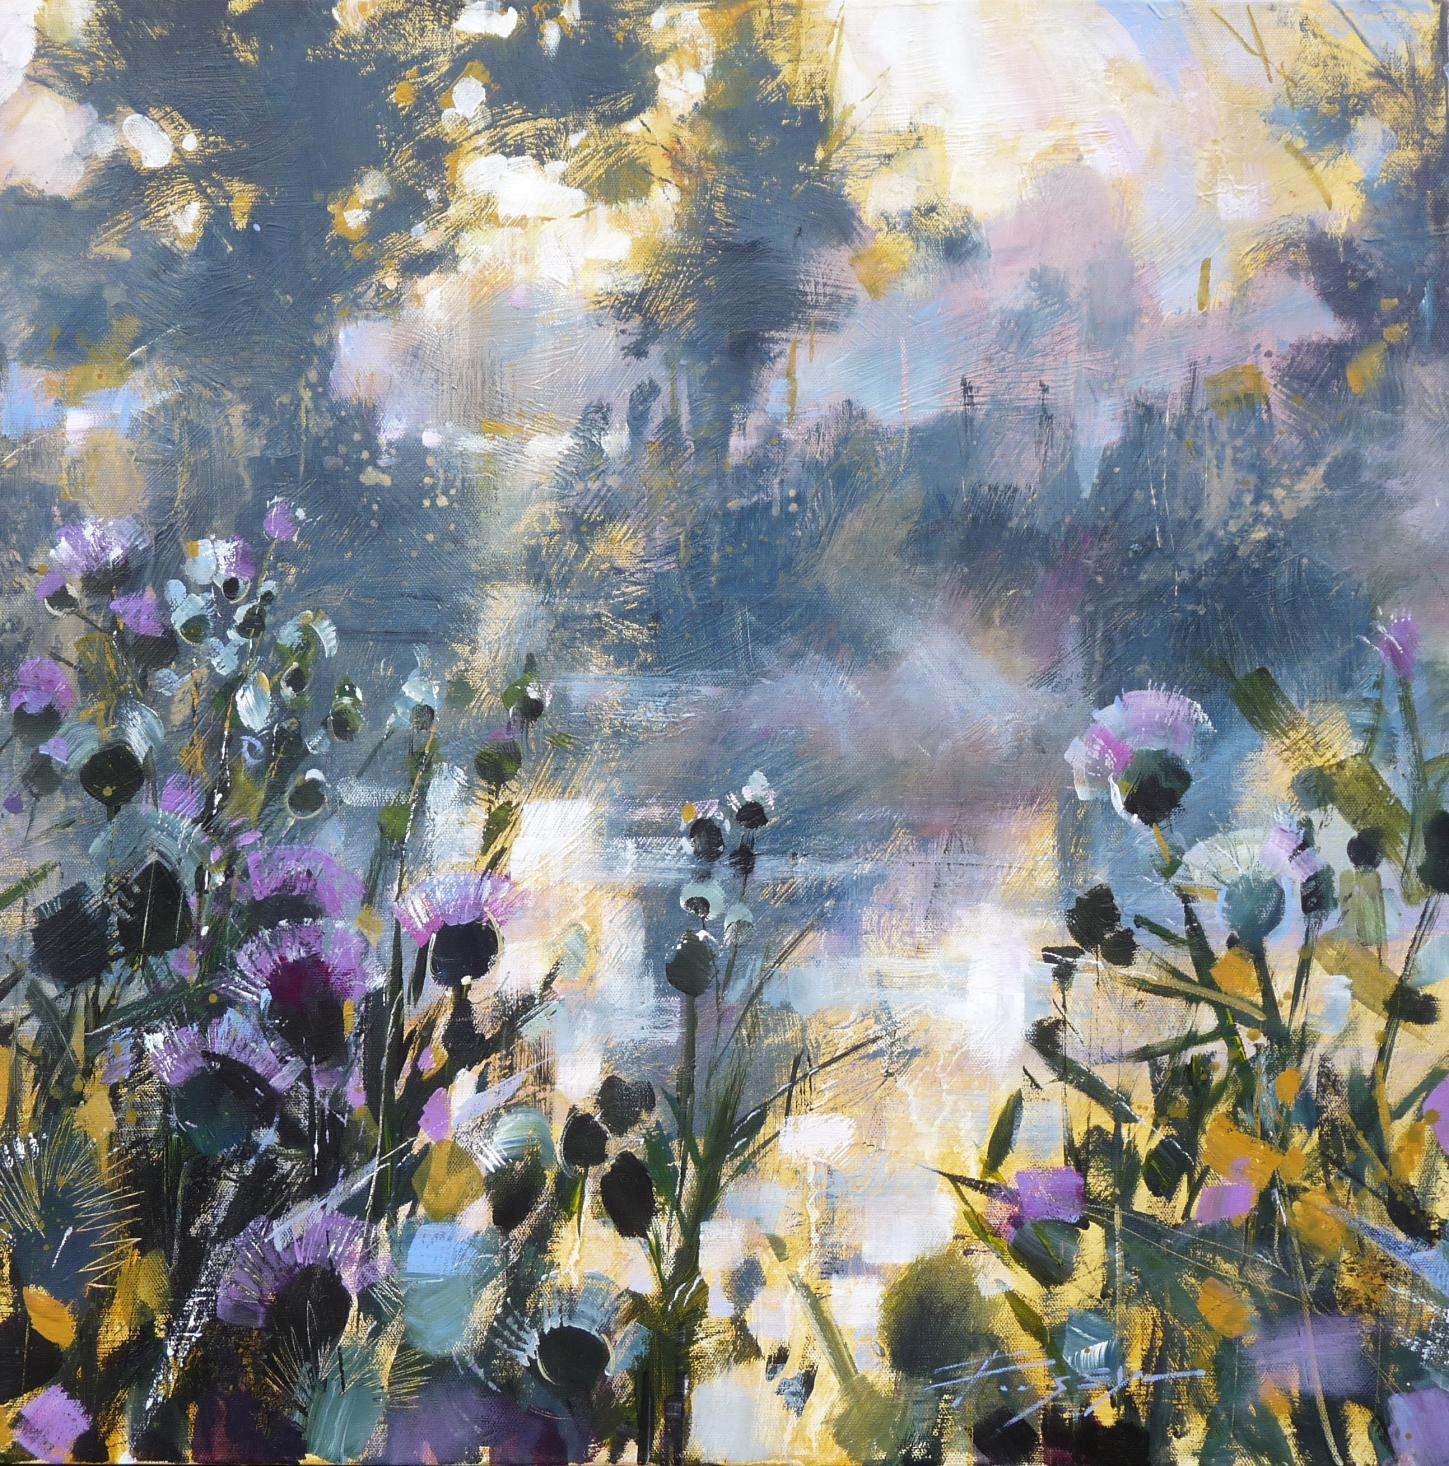 Thistles and mist on the water by Chris Forsey